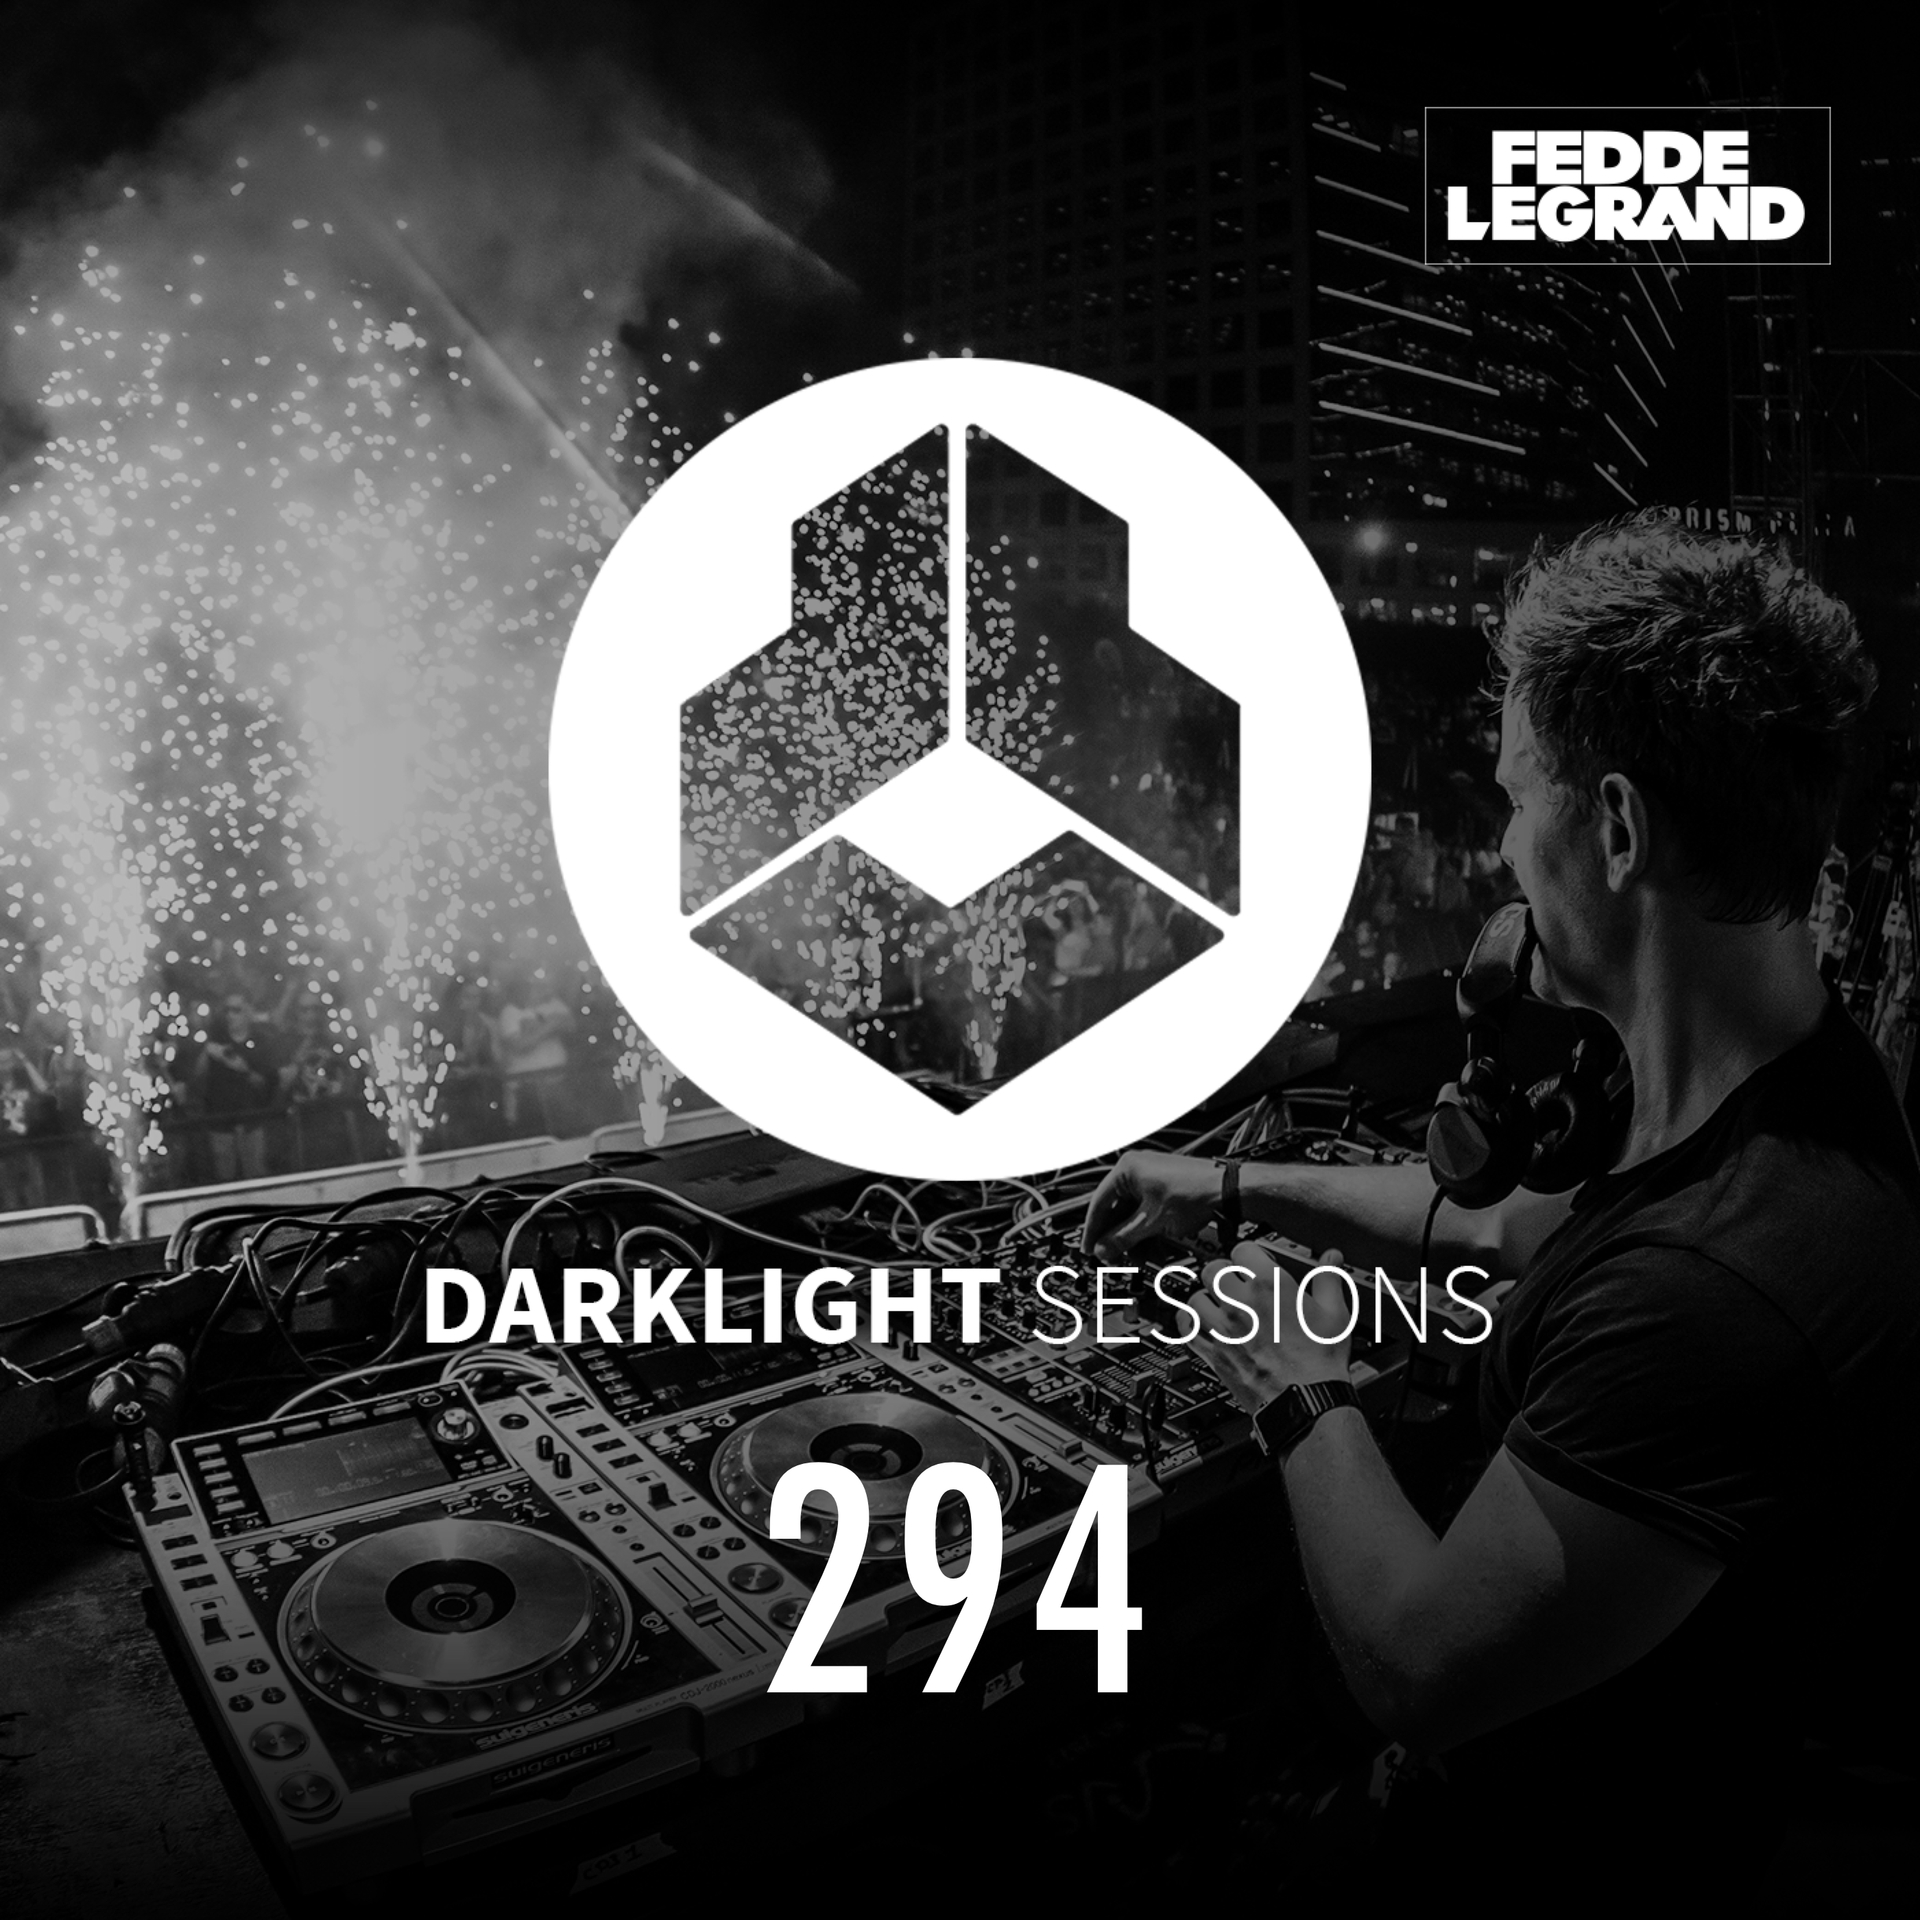 Darklight Sessions 294